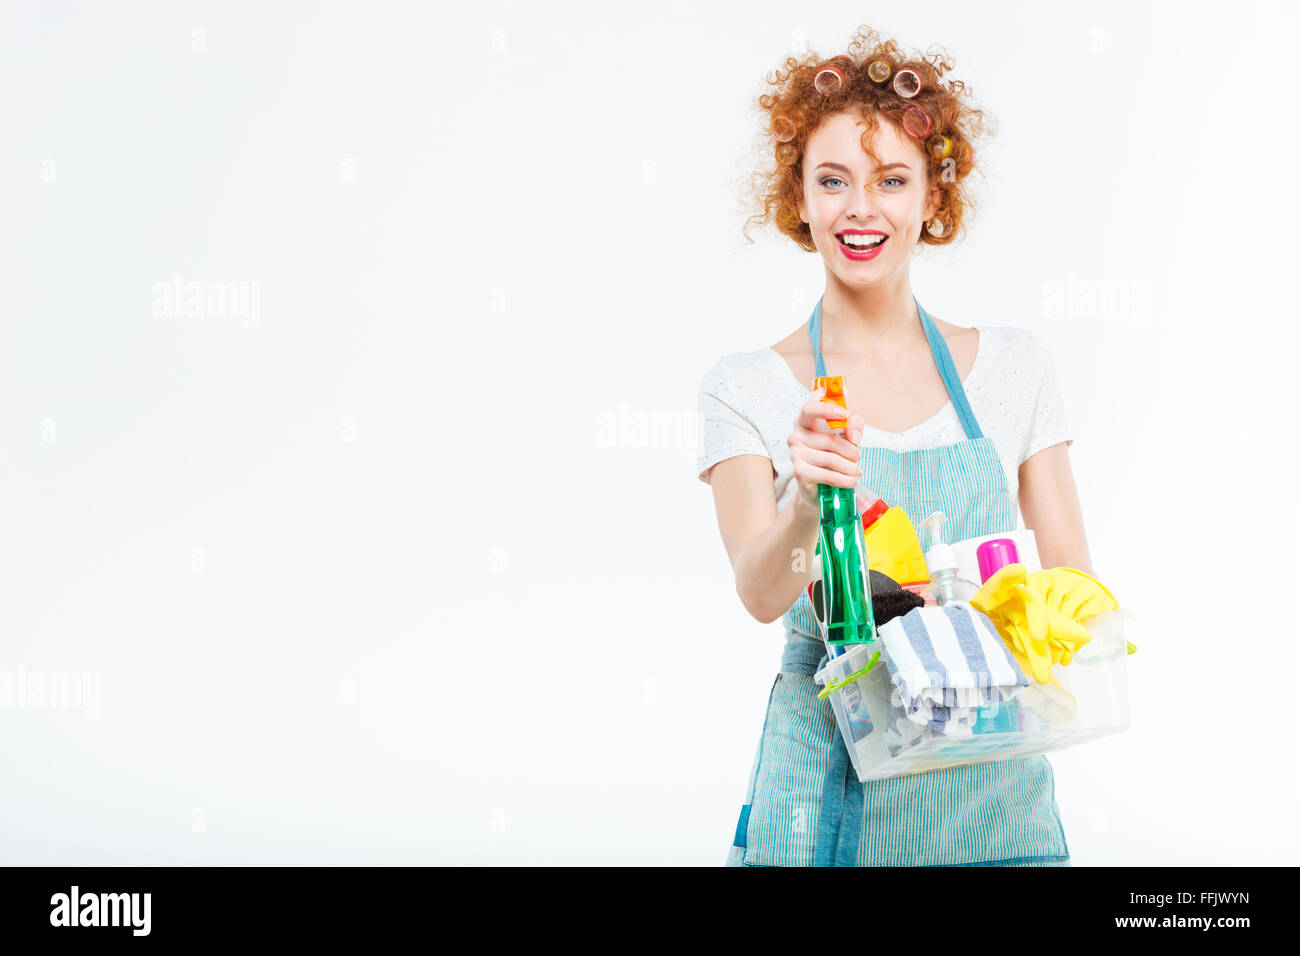 Housewife cleans with detergent spray isolated on a white background - Stock Image